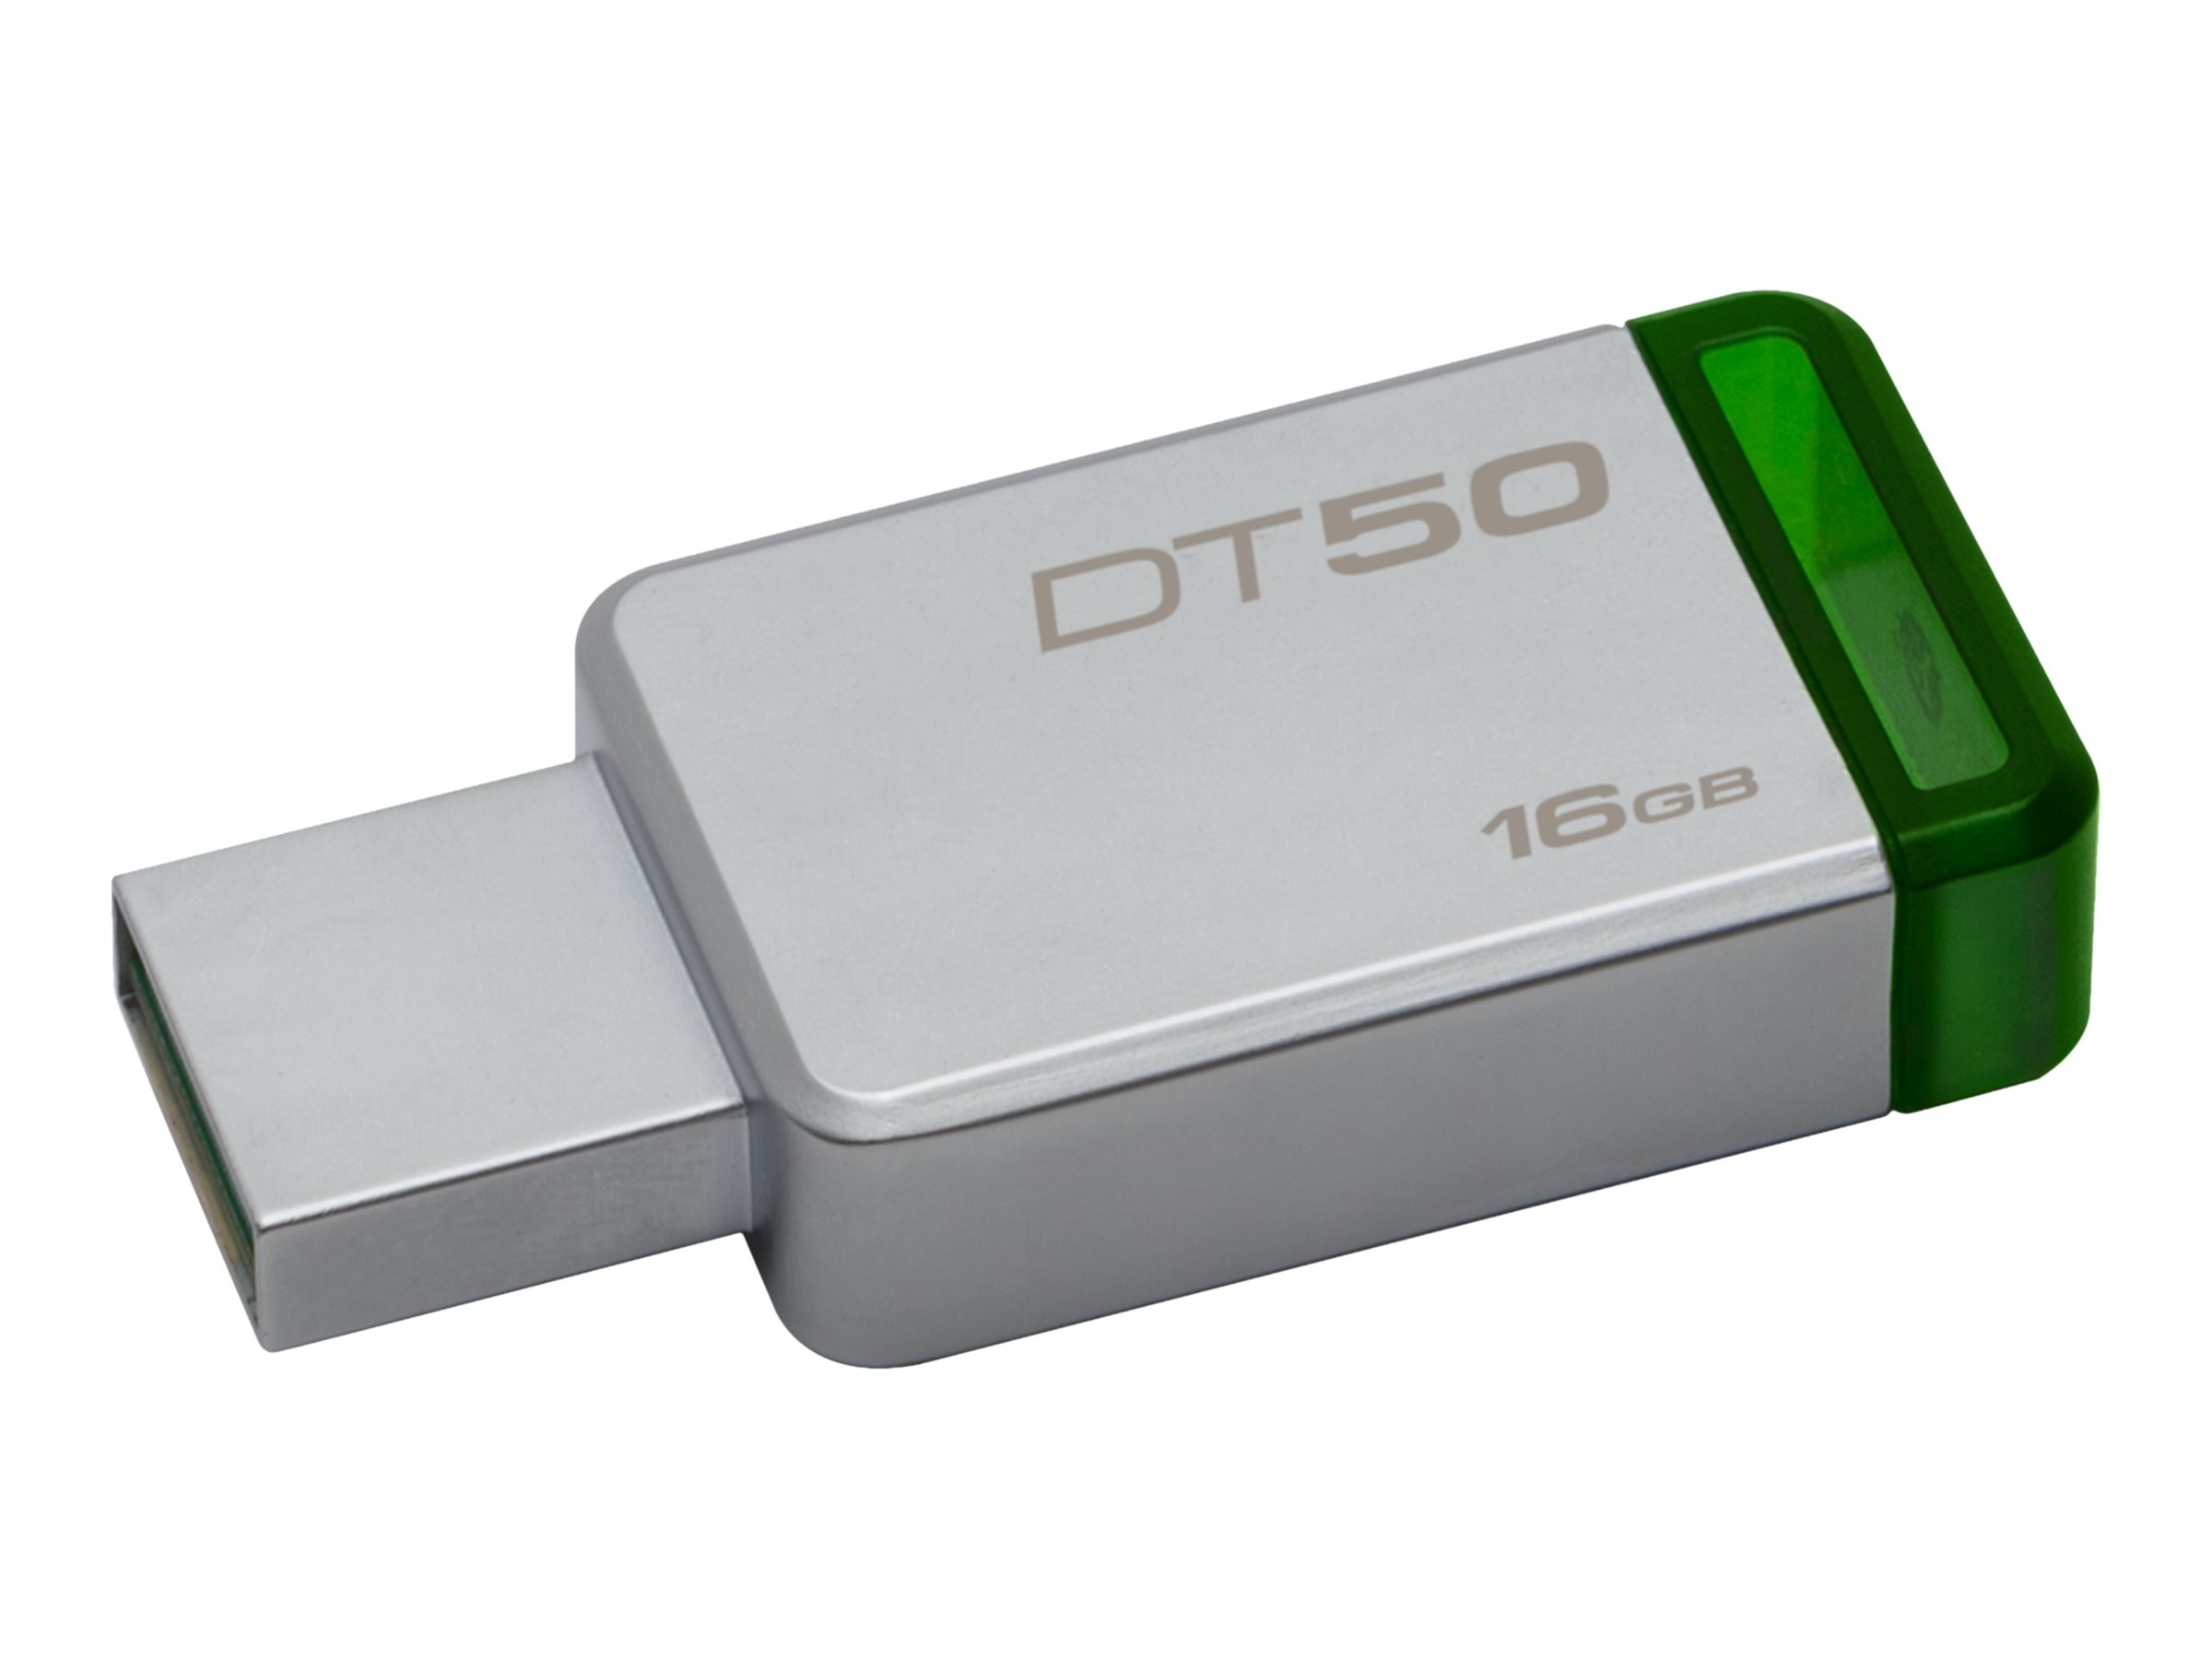 Kingston DT50/16GB Image 1